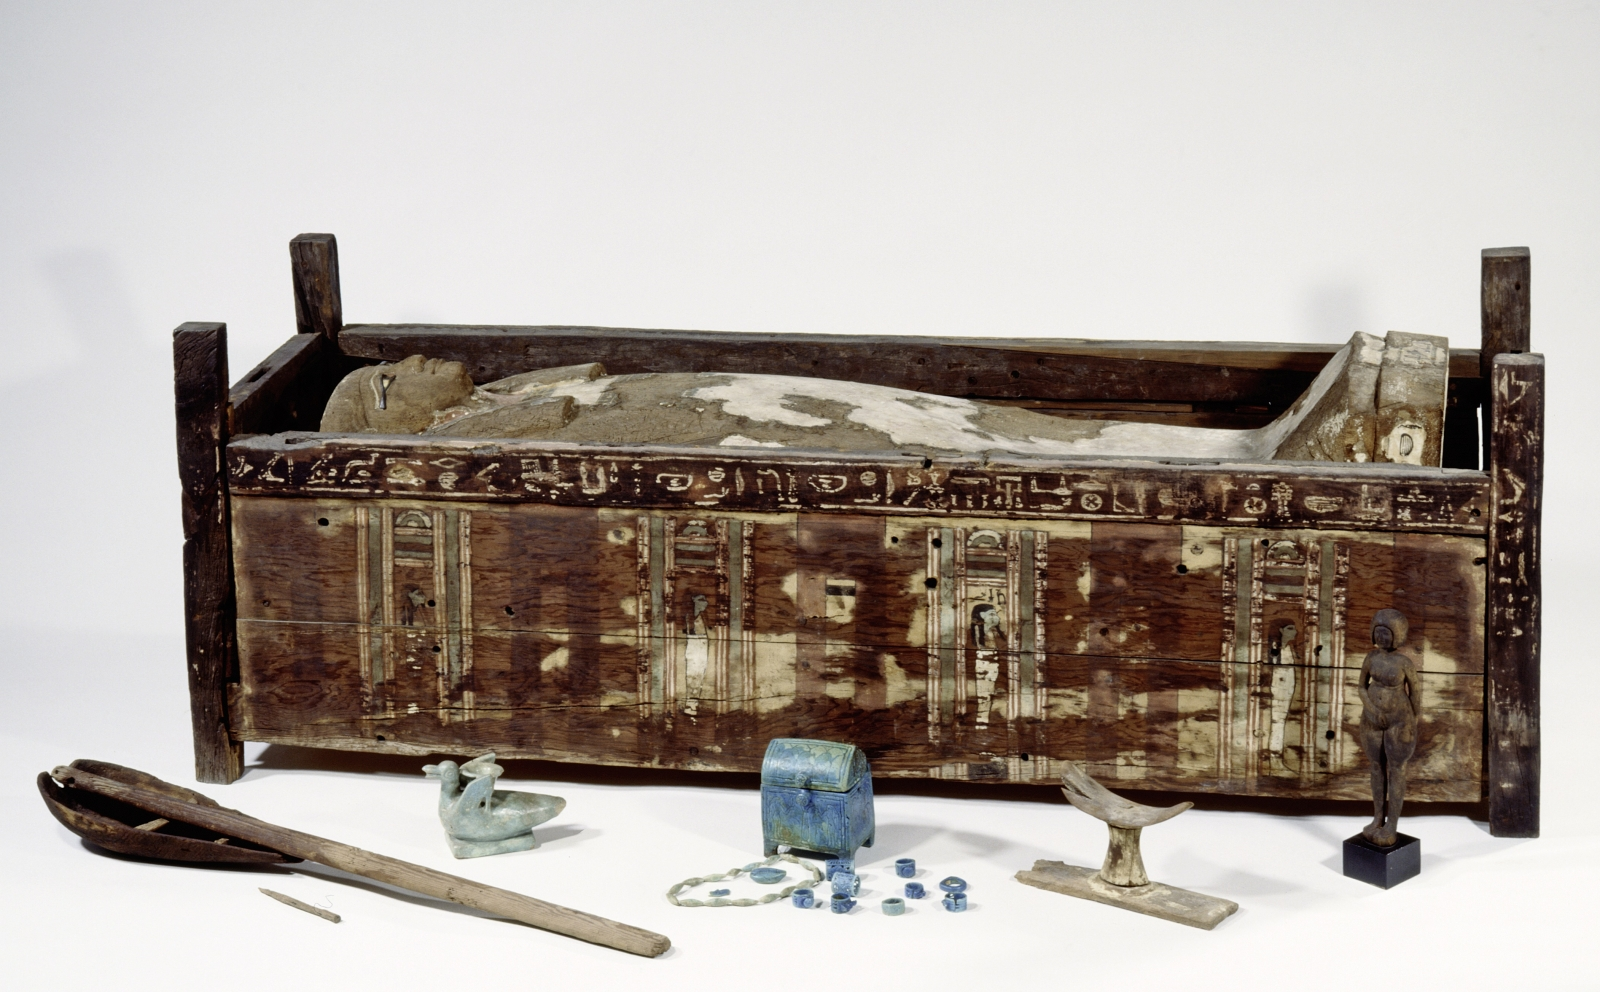 Who's your mummy? Genetic secrets of ancient Egypt unwrapped